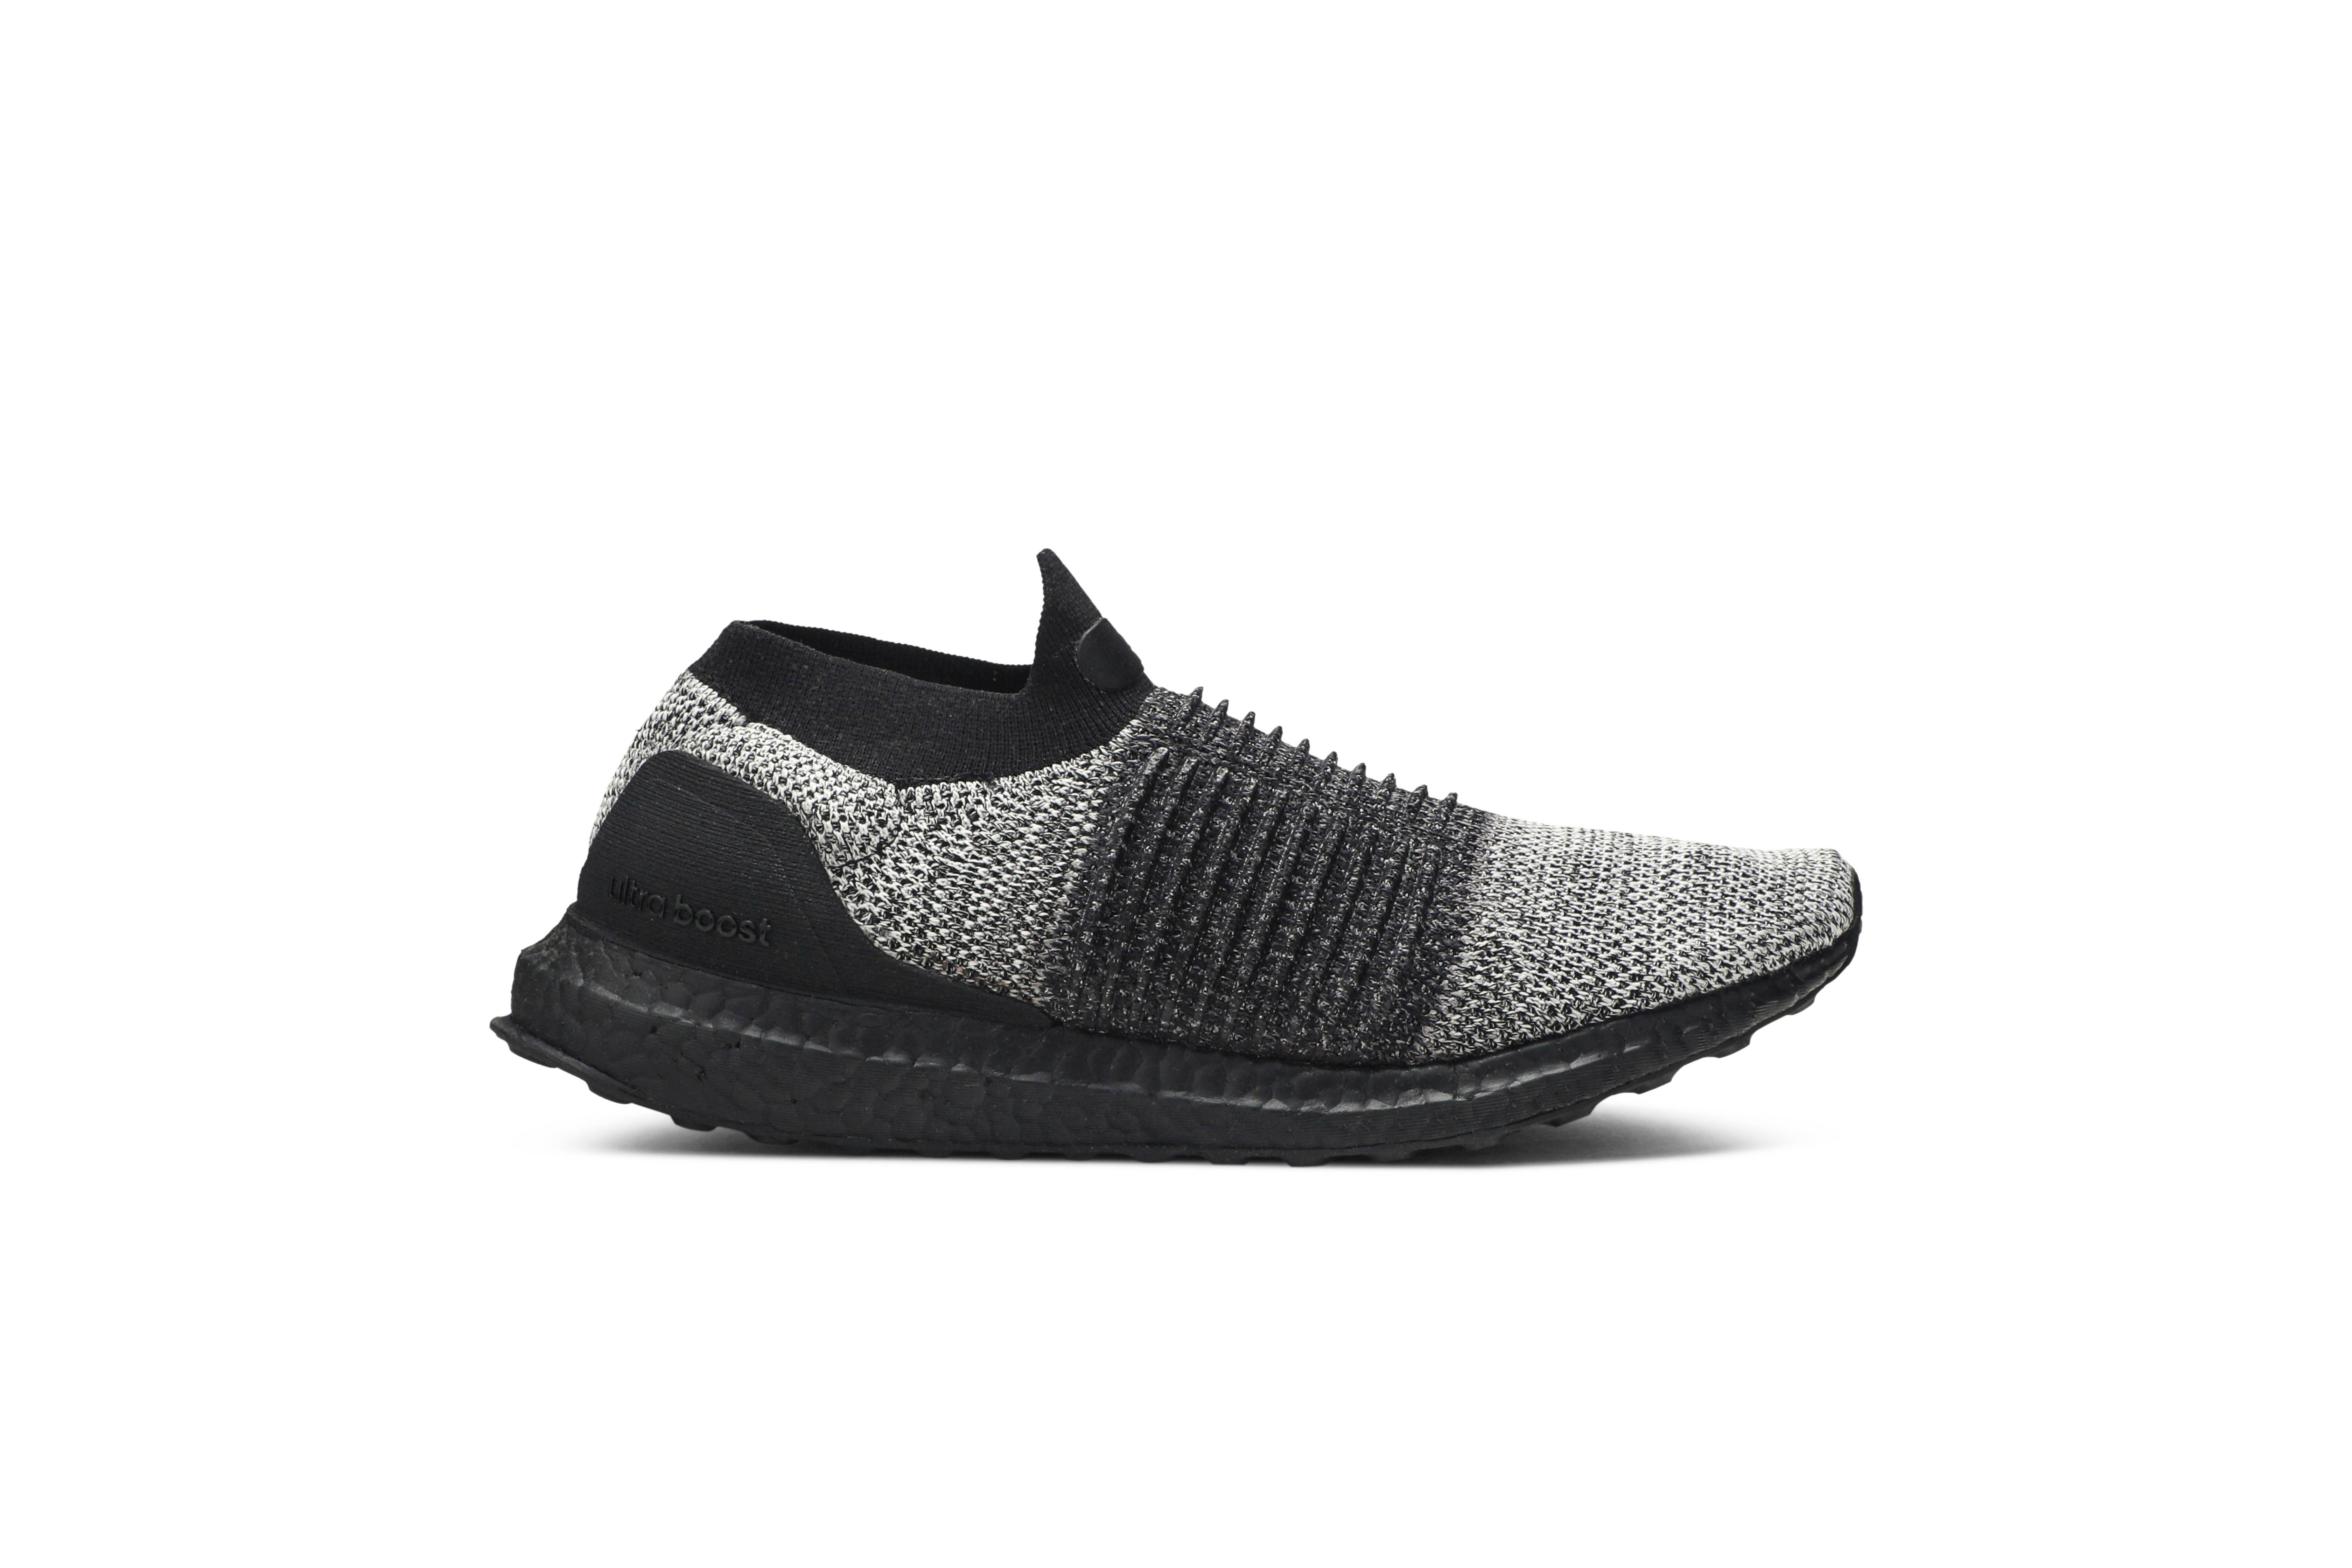 adidas ultraboost laceless shoes